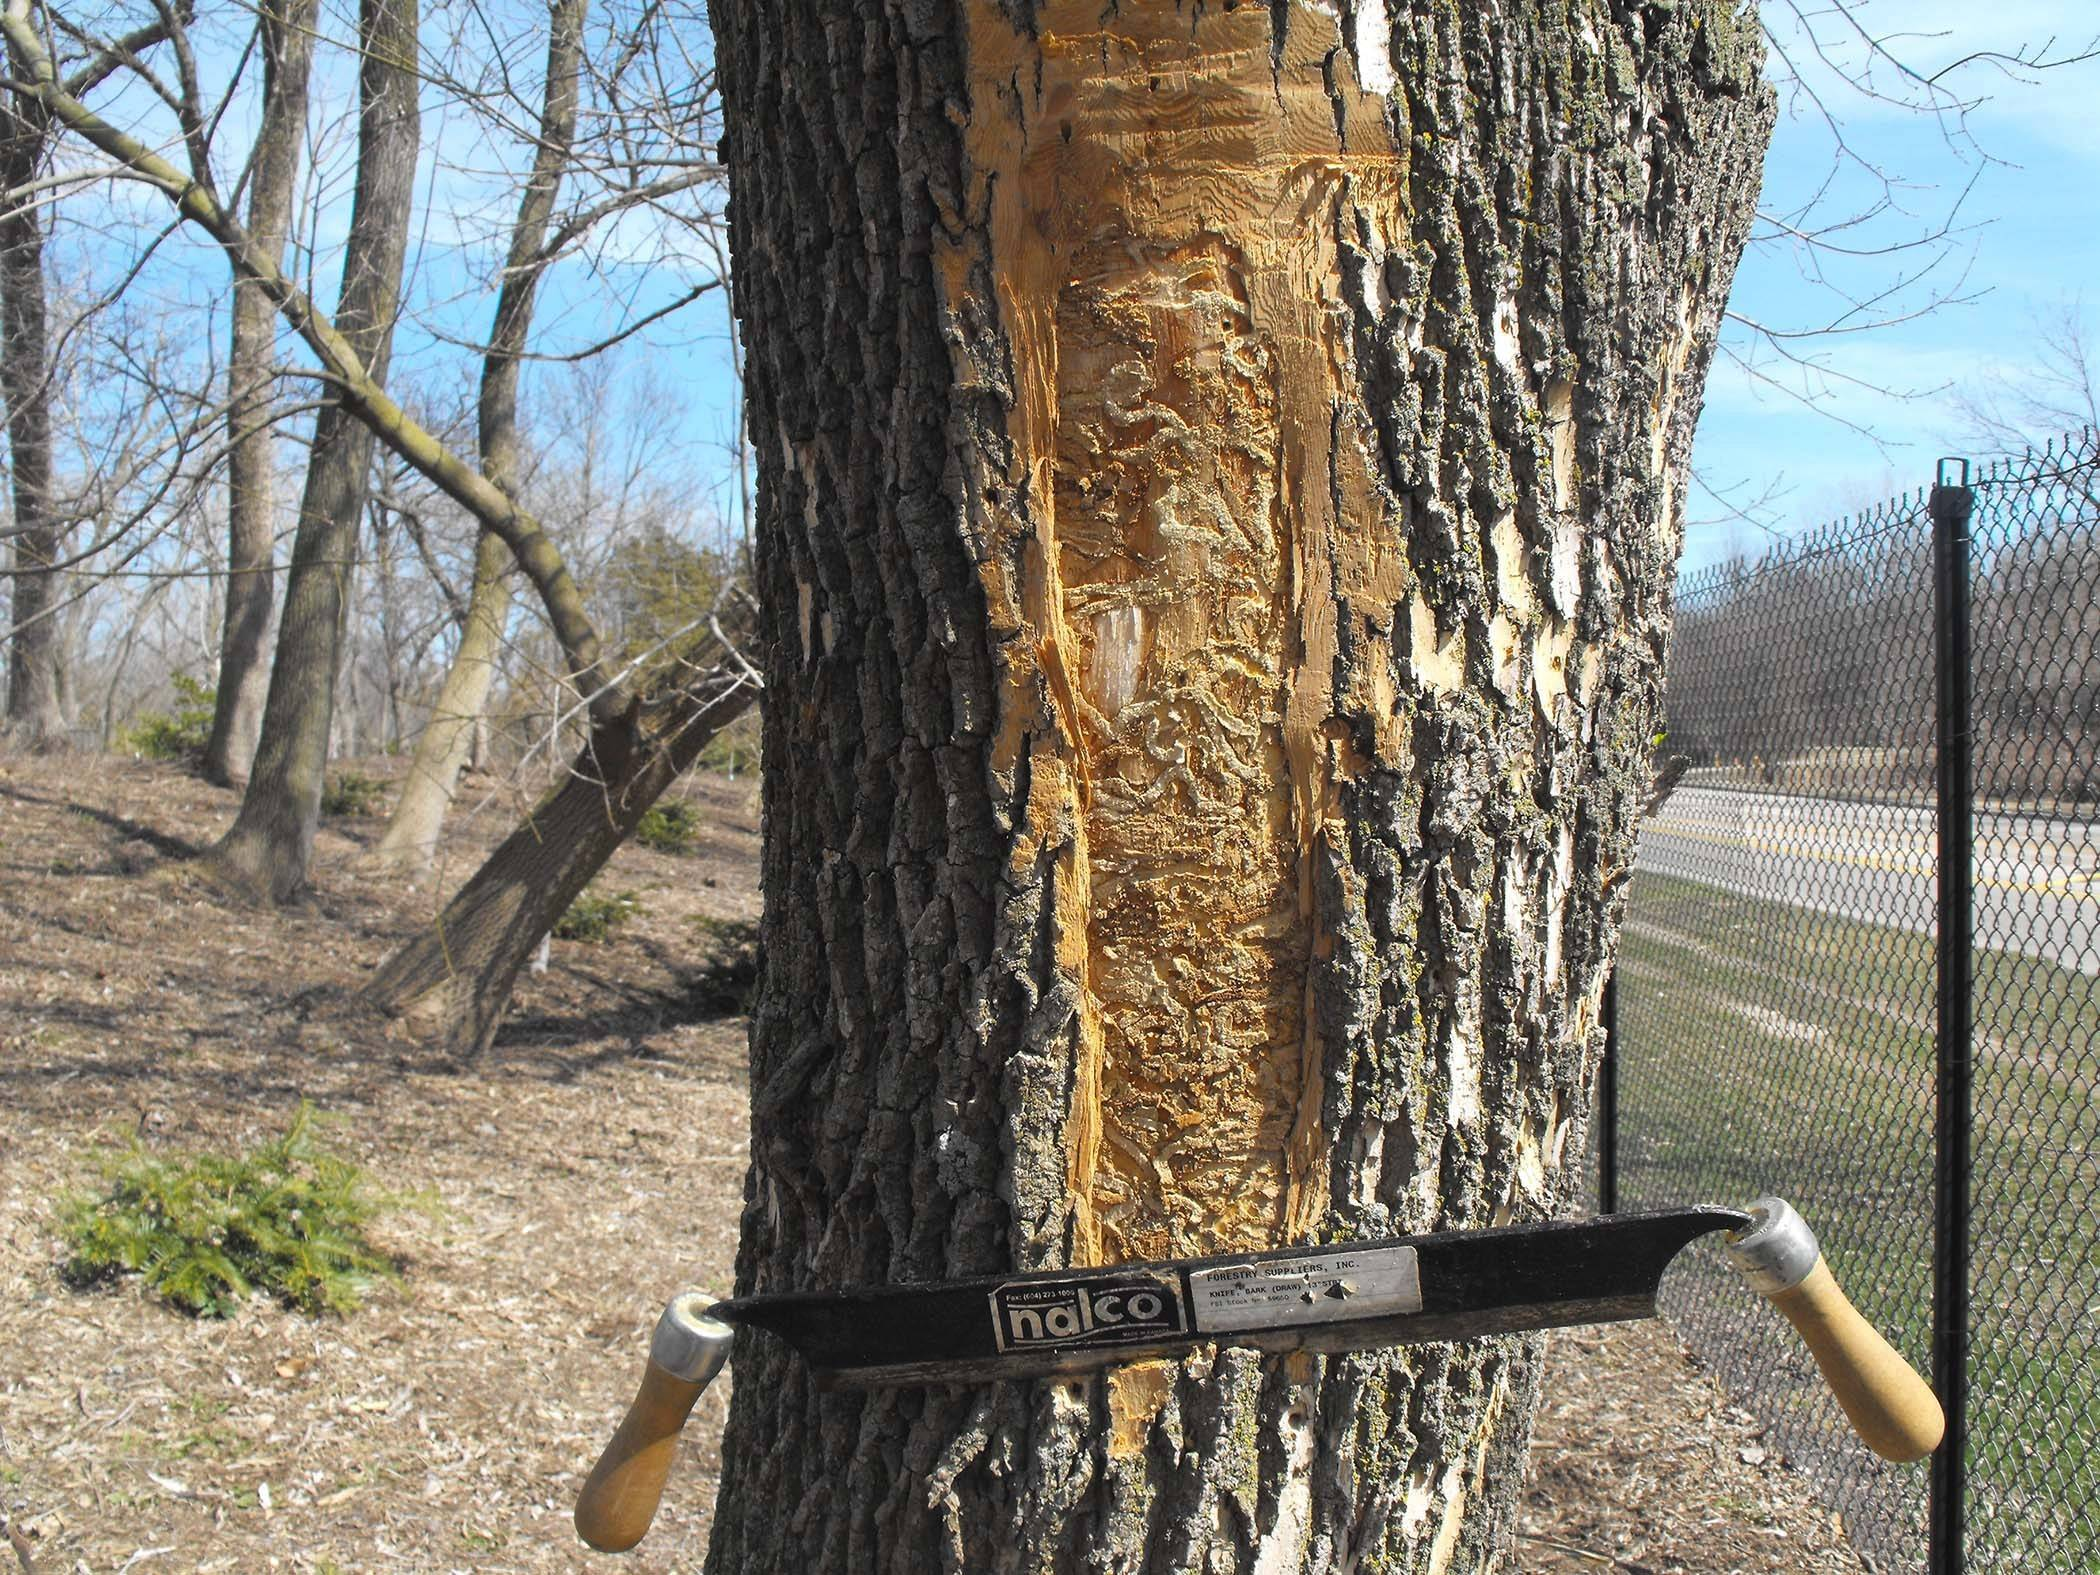 Damage caused by the emerald ash borer infestation is becoming very visible in the Chicago area.